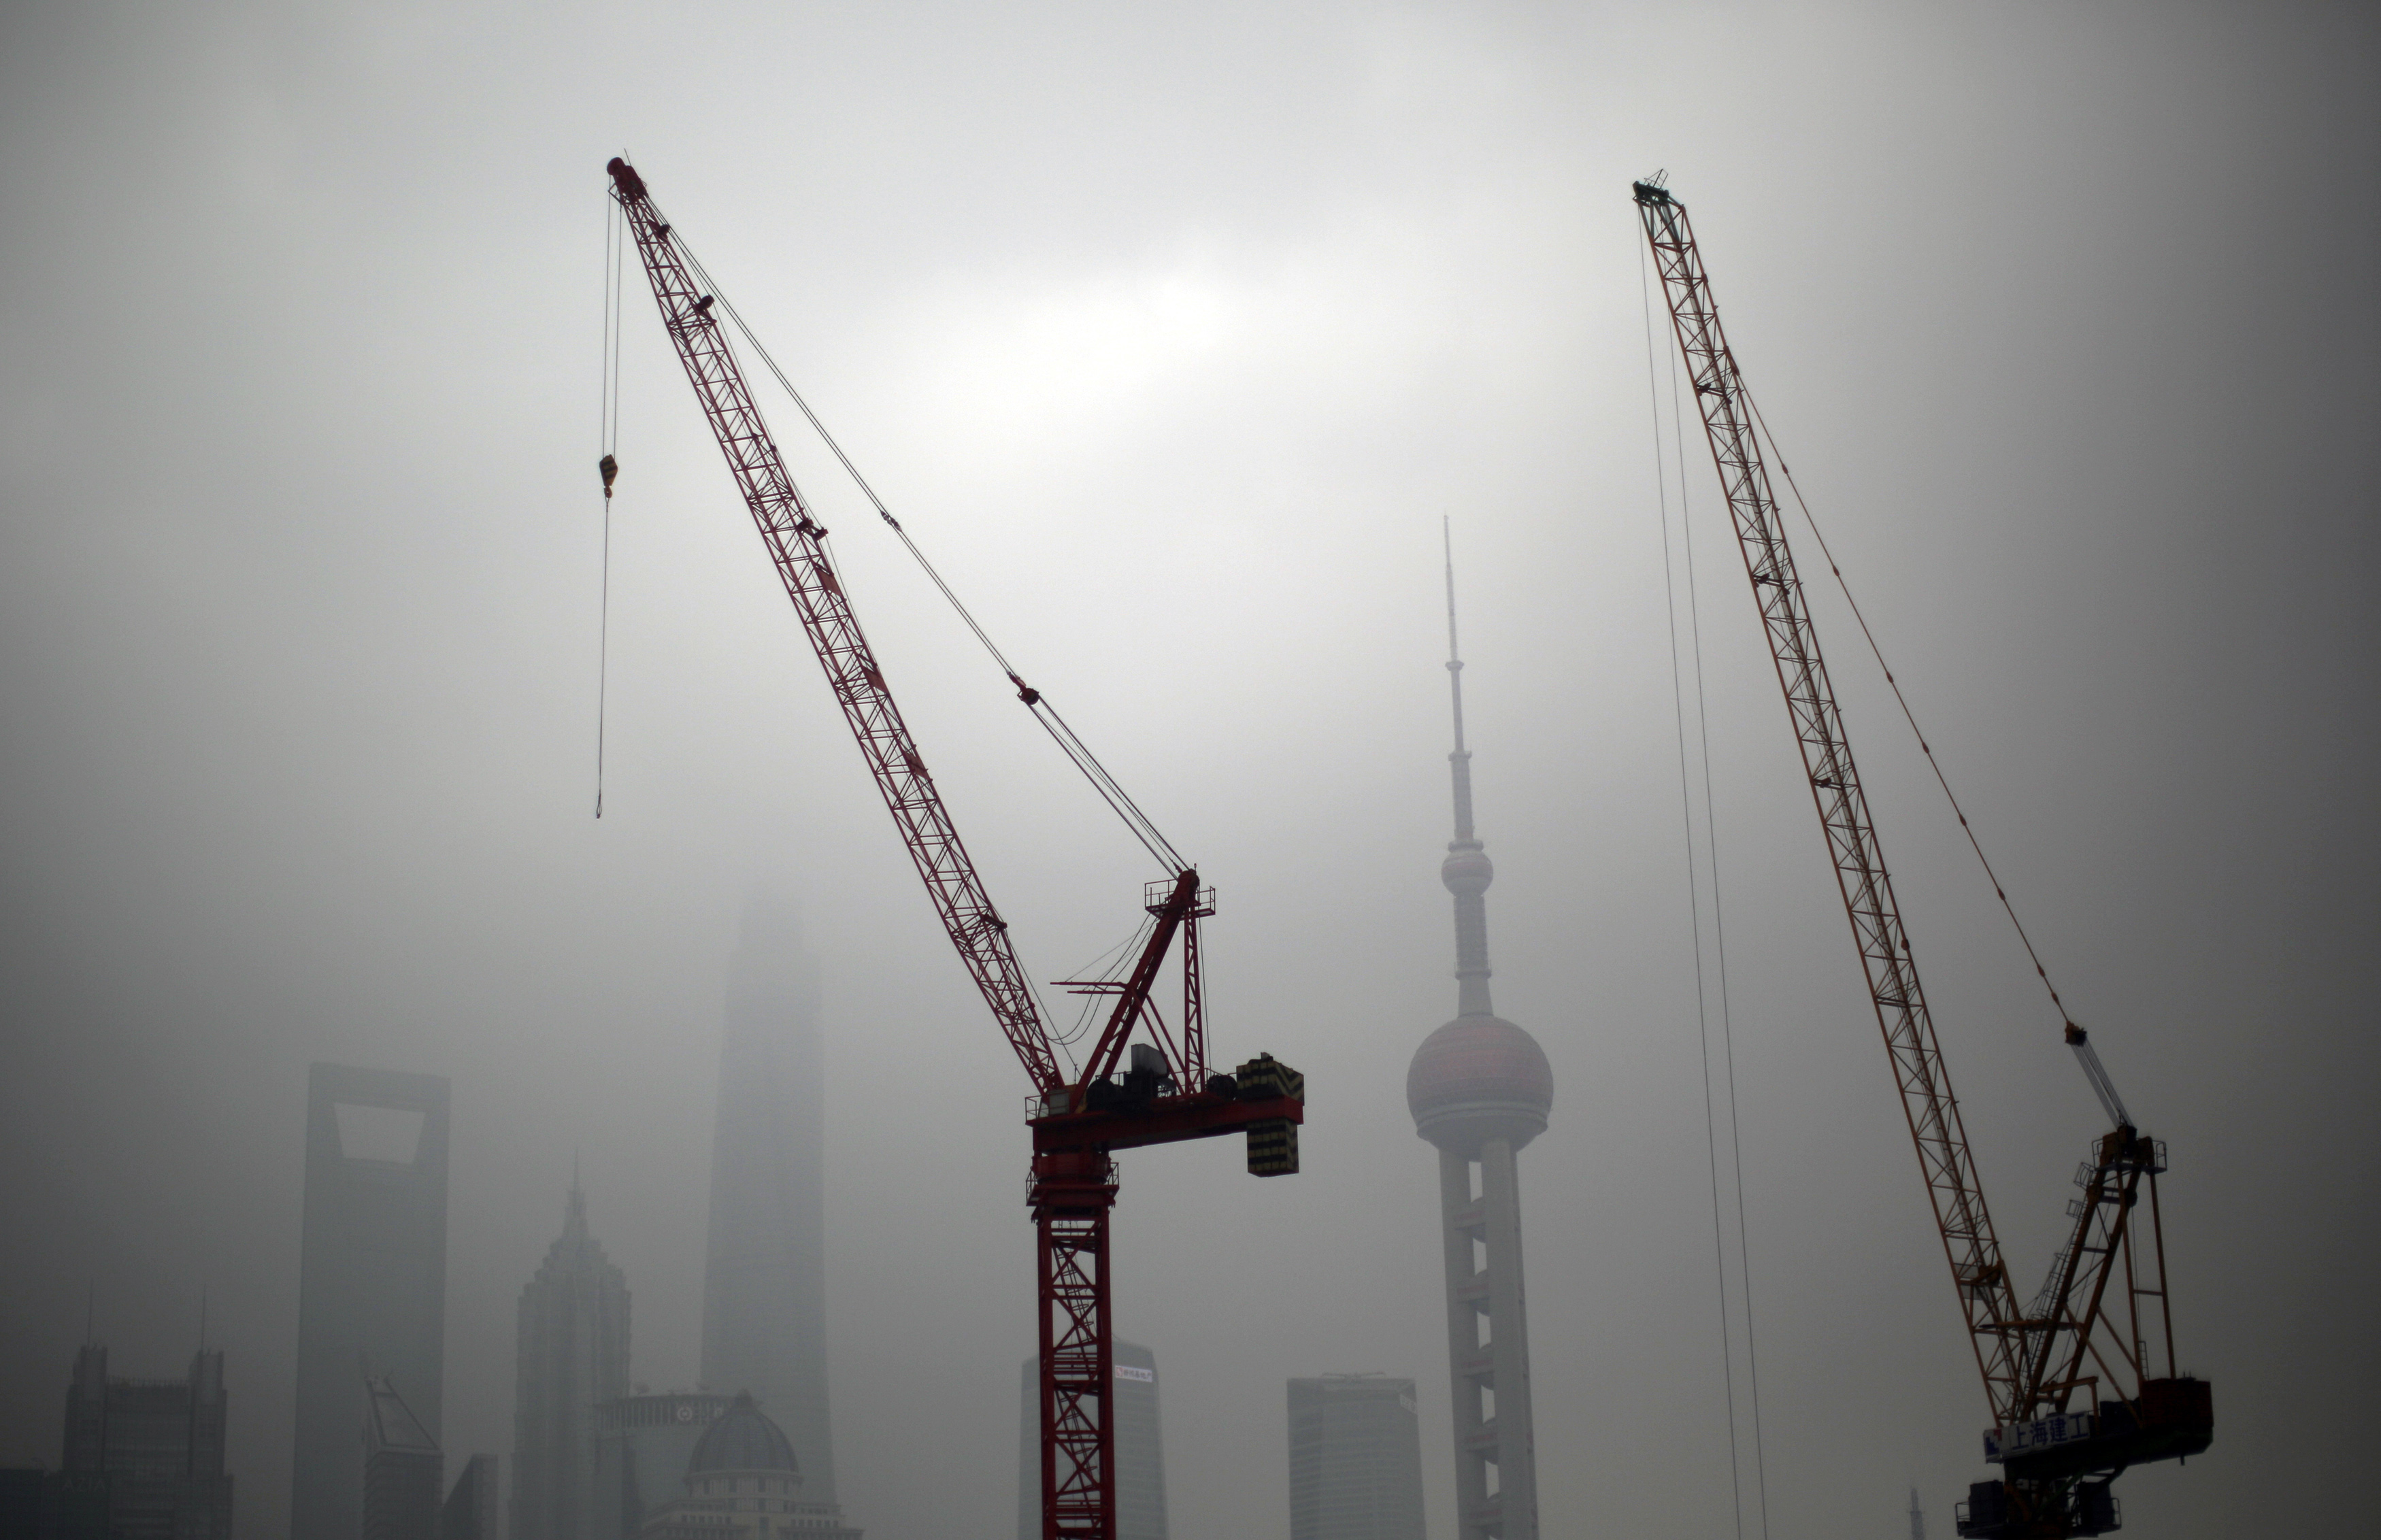 Construction cranes are see near Pudong financial district of Shanghai